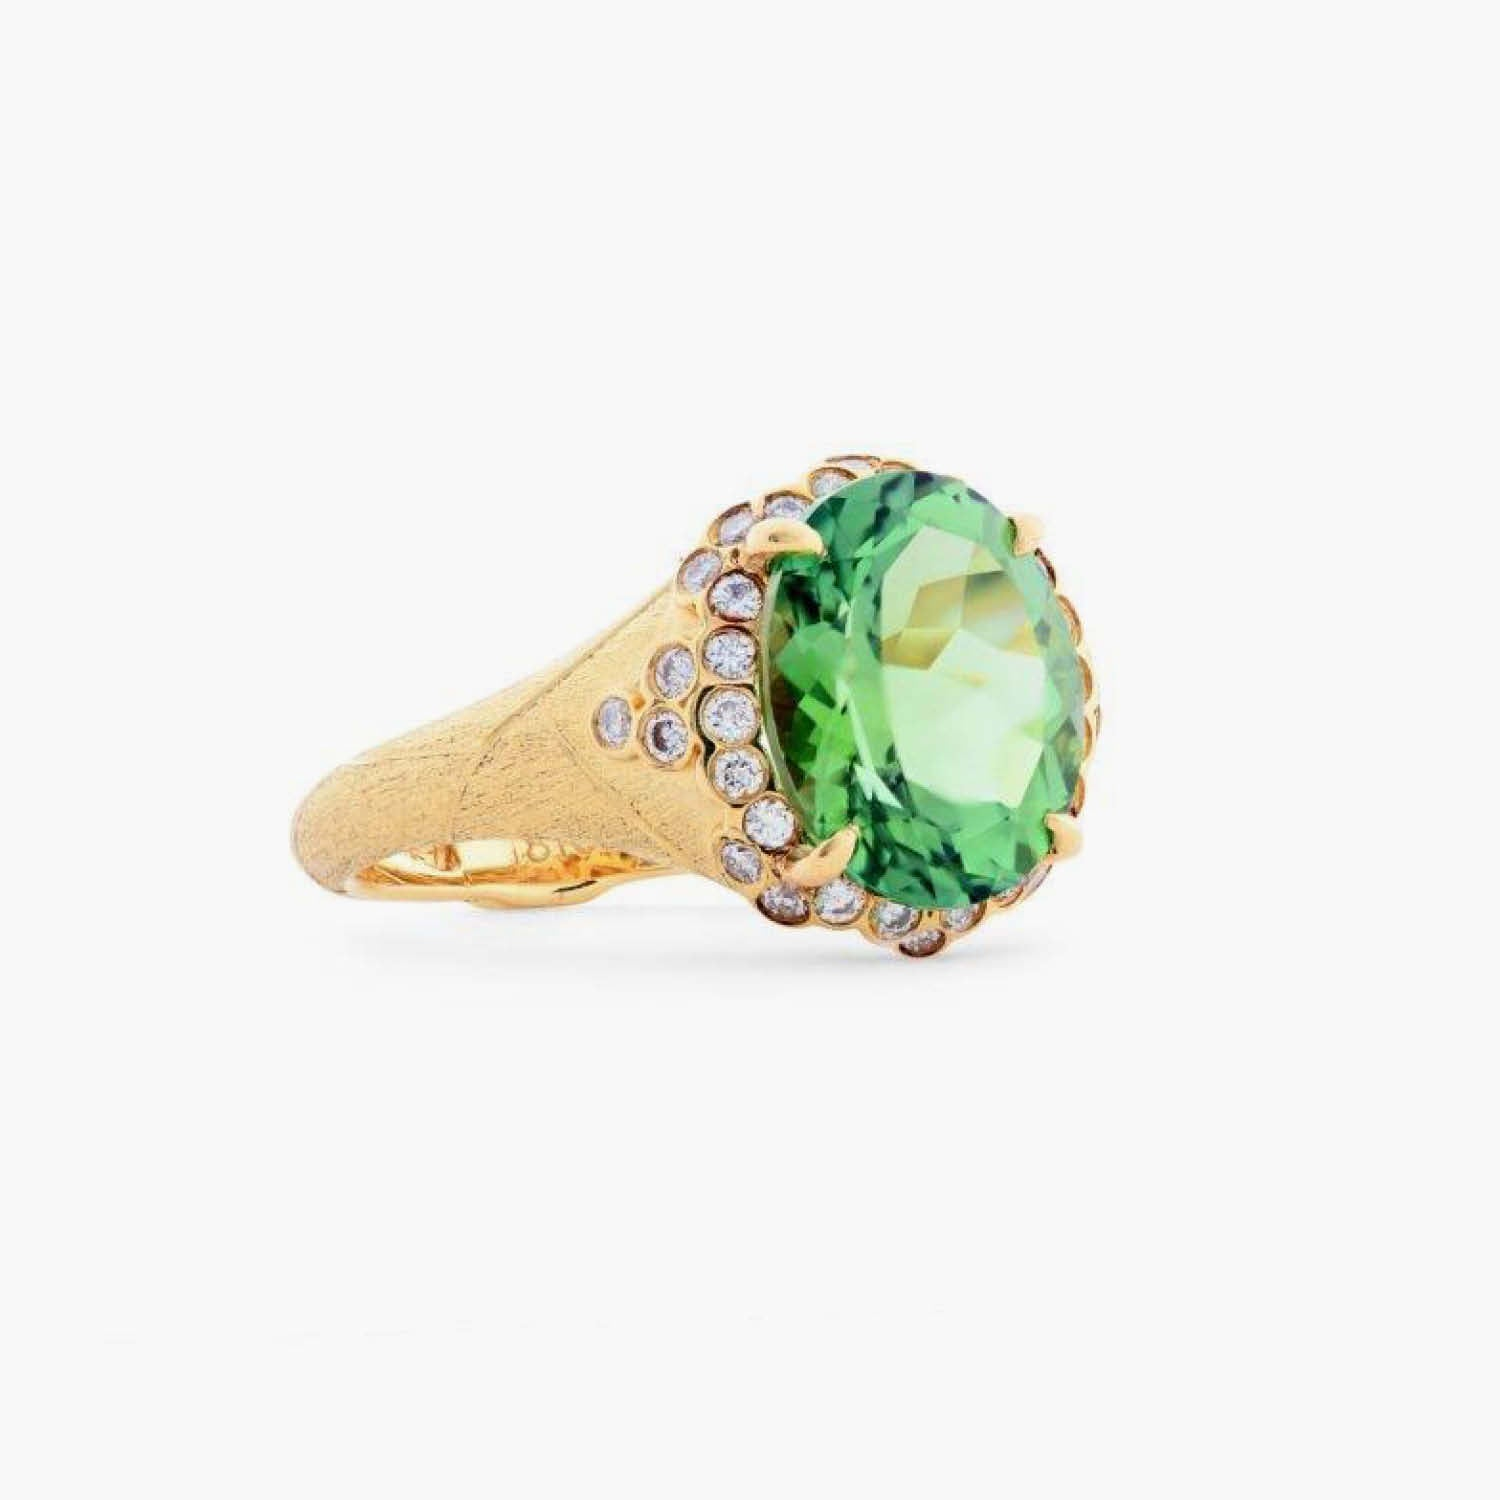 Constellation Ring with Green Tourmaline